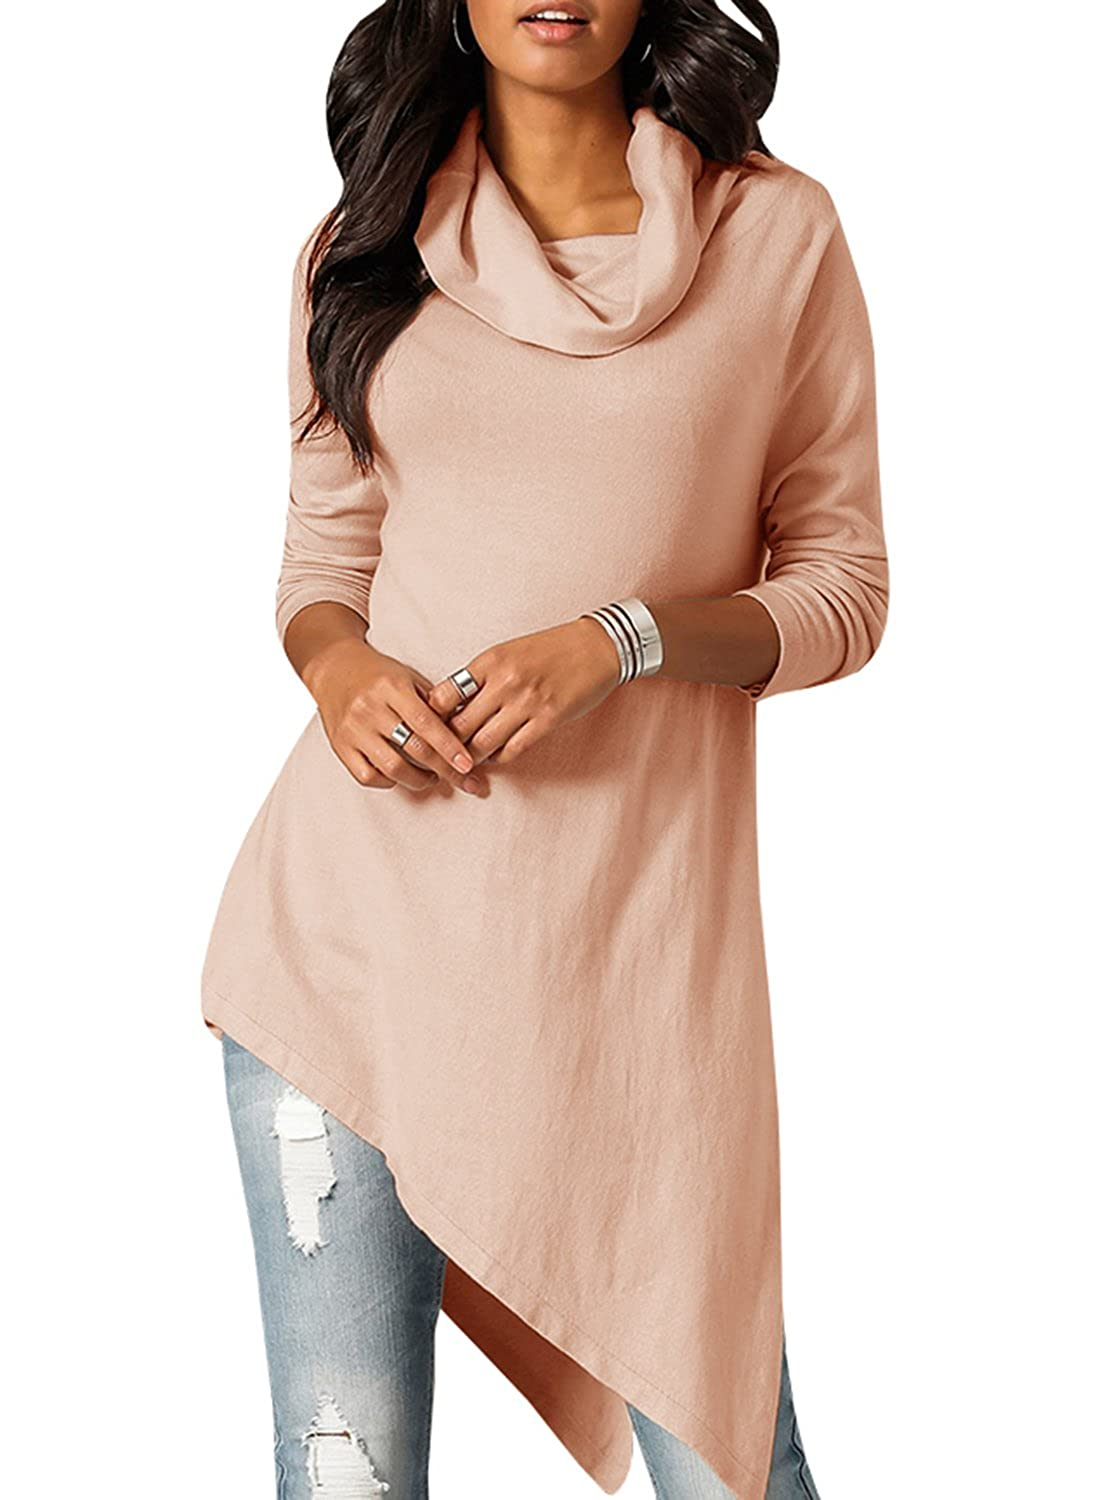 EastLife Womens Long Sleeve Shirts Summer Casual Cowl Neck Long Tunic Tops Sweatshirts